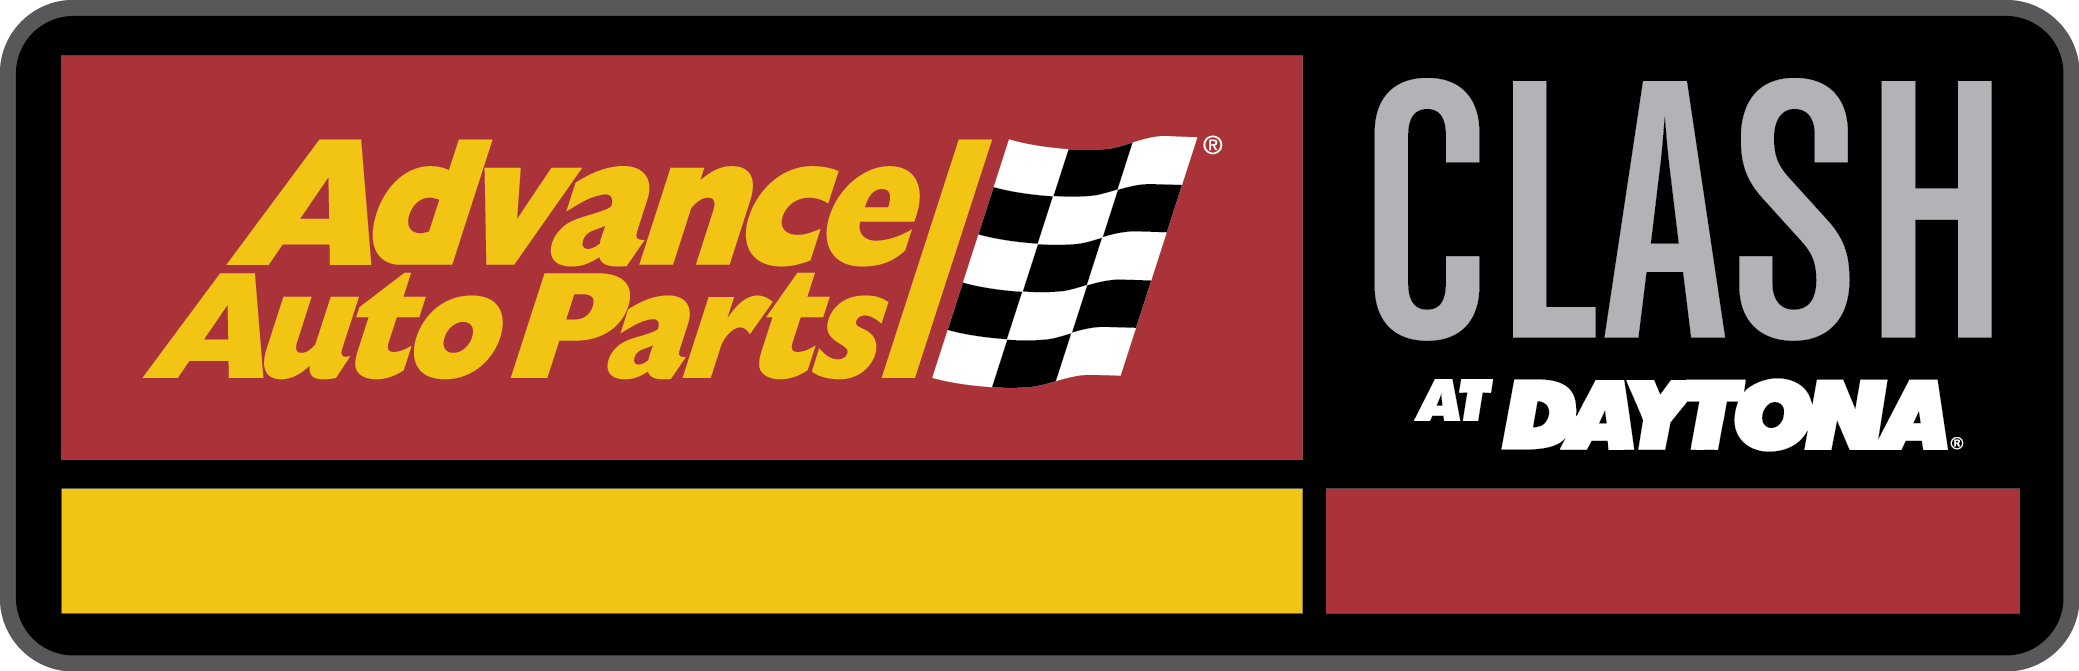 20 Of Nascar S Top Stars Eligible For 2019 Advance Auto Parts Clash